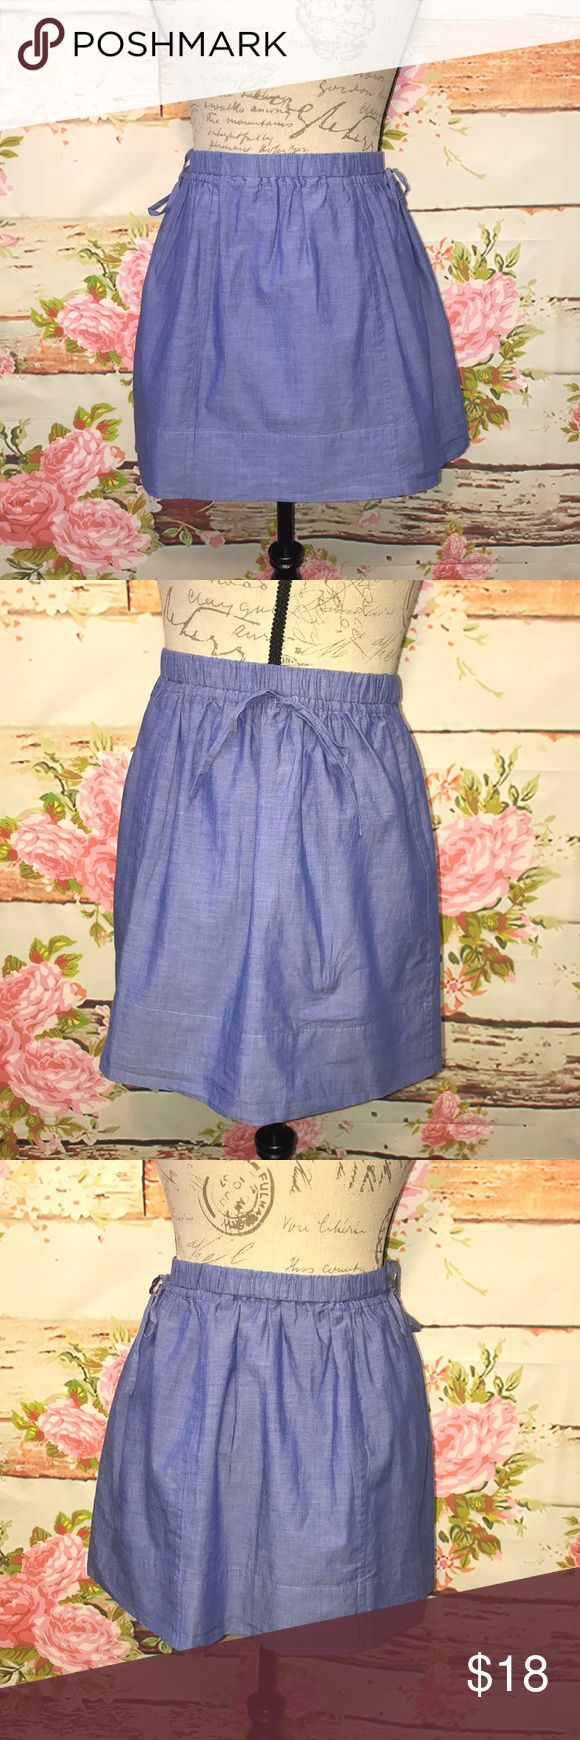 """J. Crew Mini Skirt NWOT! J. Crew size small blue mini skirt. Elastic waistband with 2 self-tie drawstrings on each hip to make a bow. Puckered beneath waist. Fully lined. Waist: 13"""", Hips: 21"""", Length: 15"""". 100% Cotton. Never worn! Retail: $59.50 J. Crew Skirts Mini"""